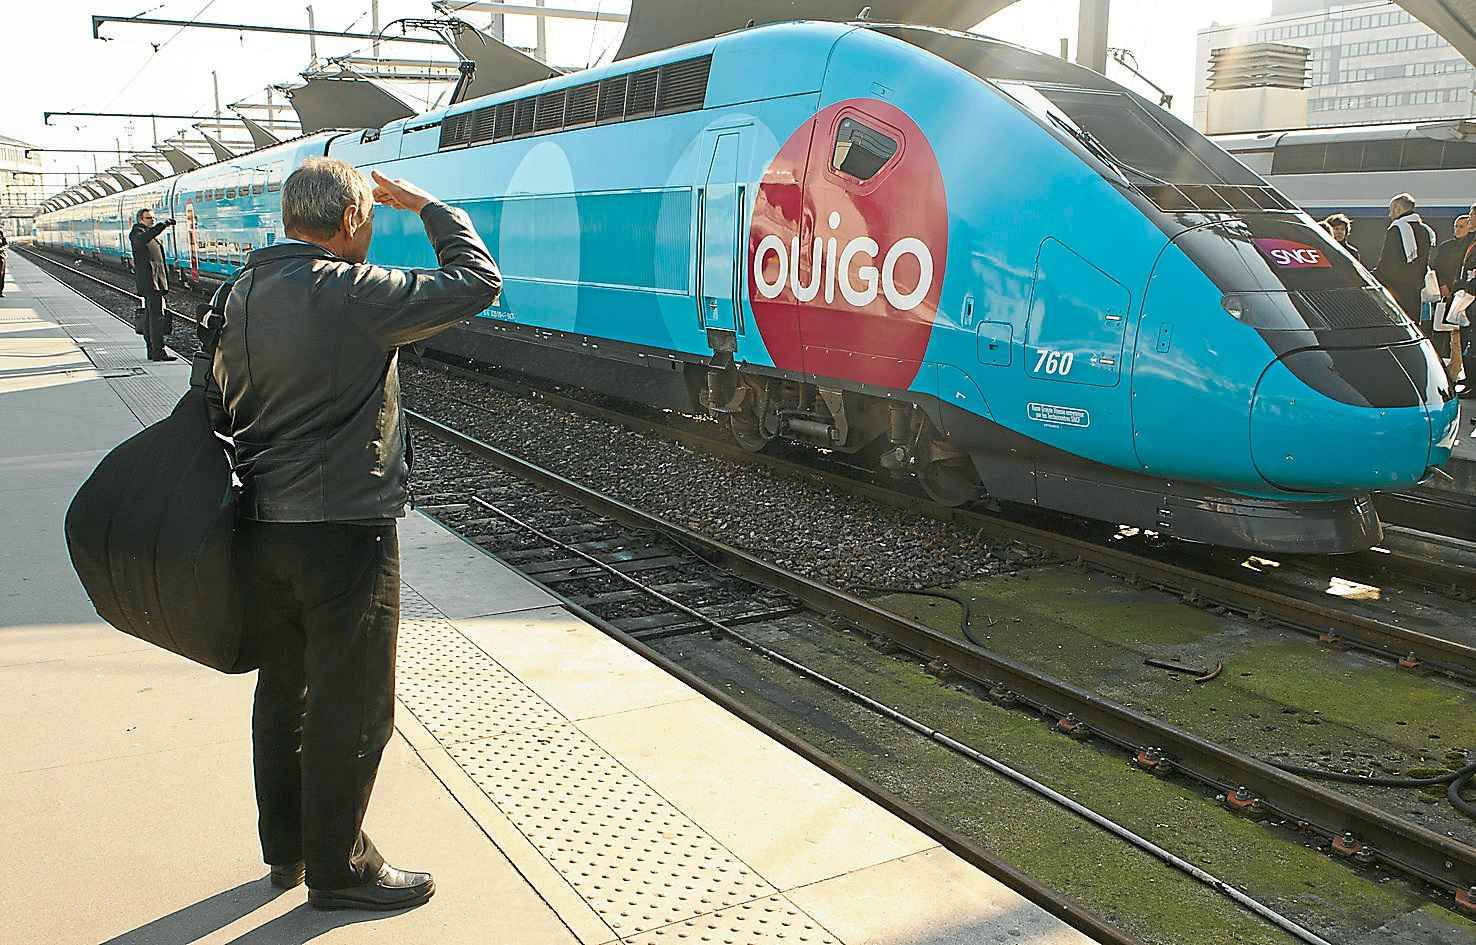 Tourcoing sept destinations tgv low cost ouigo sont for Low cost lyon